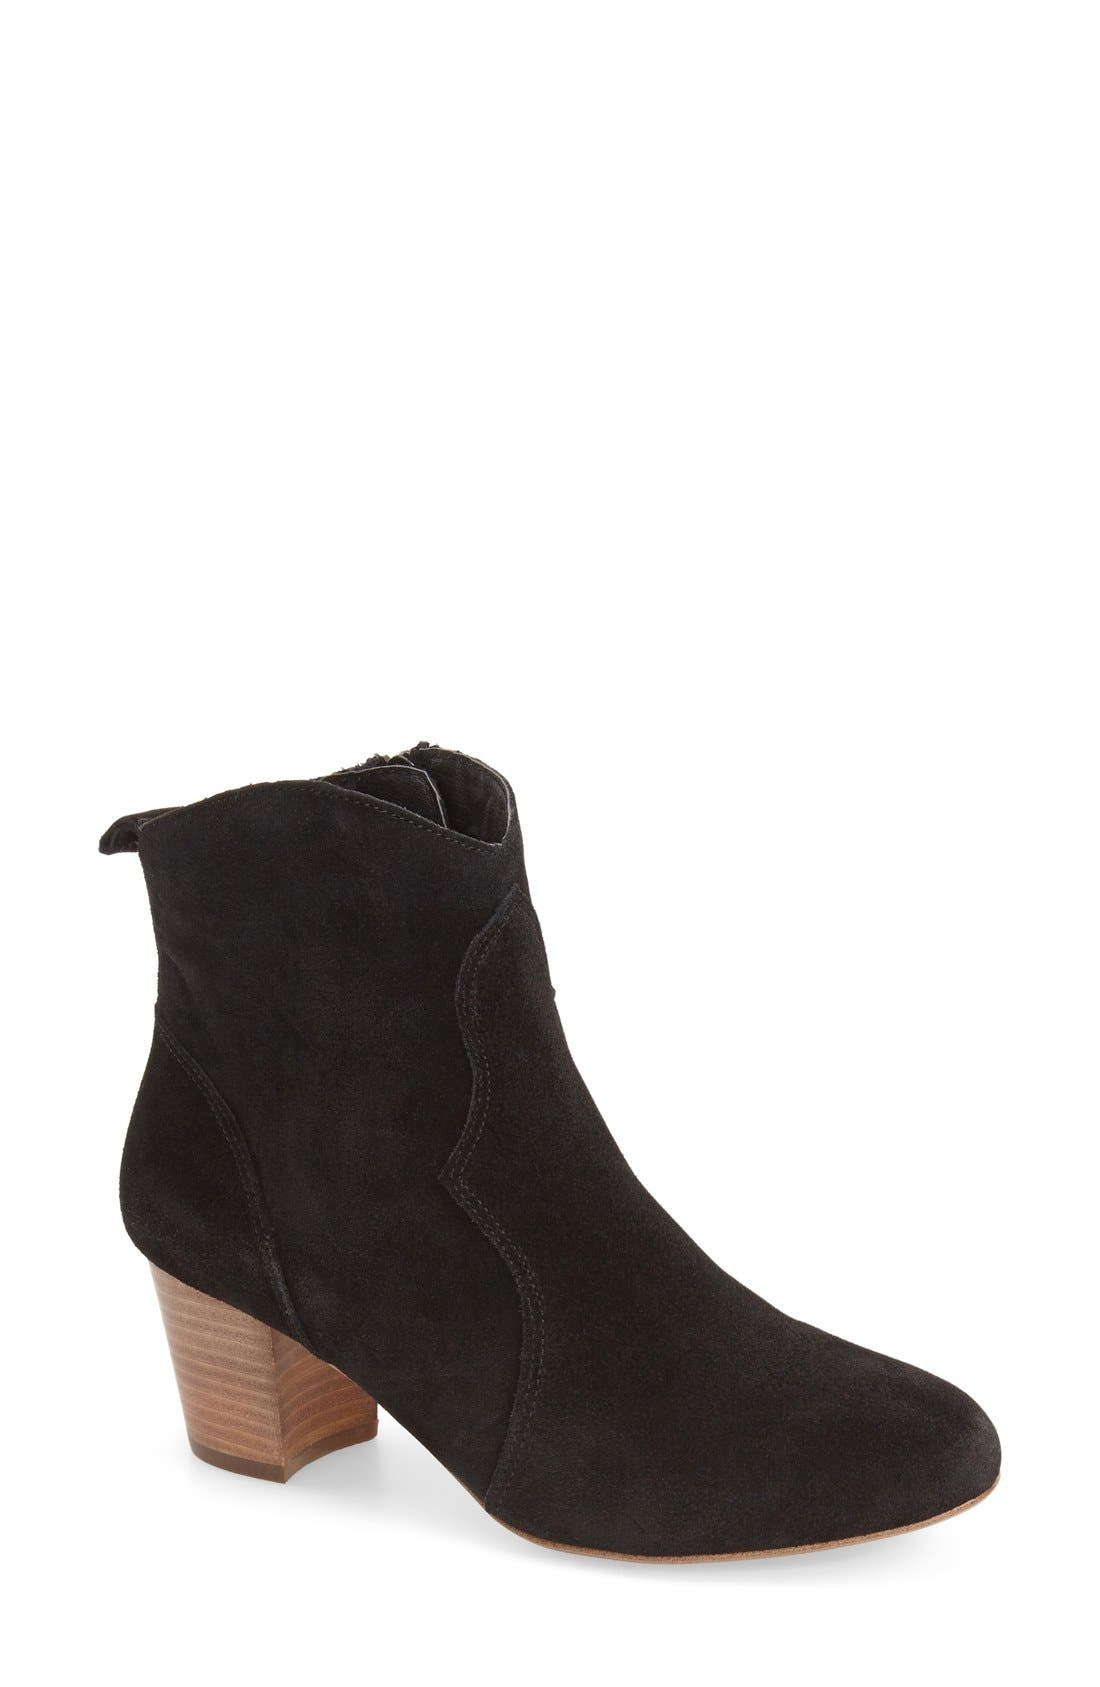 STEVE MADDEN, 'Hipstr' Bootie, Main thumbnail 1, color, 006